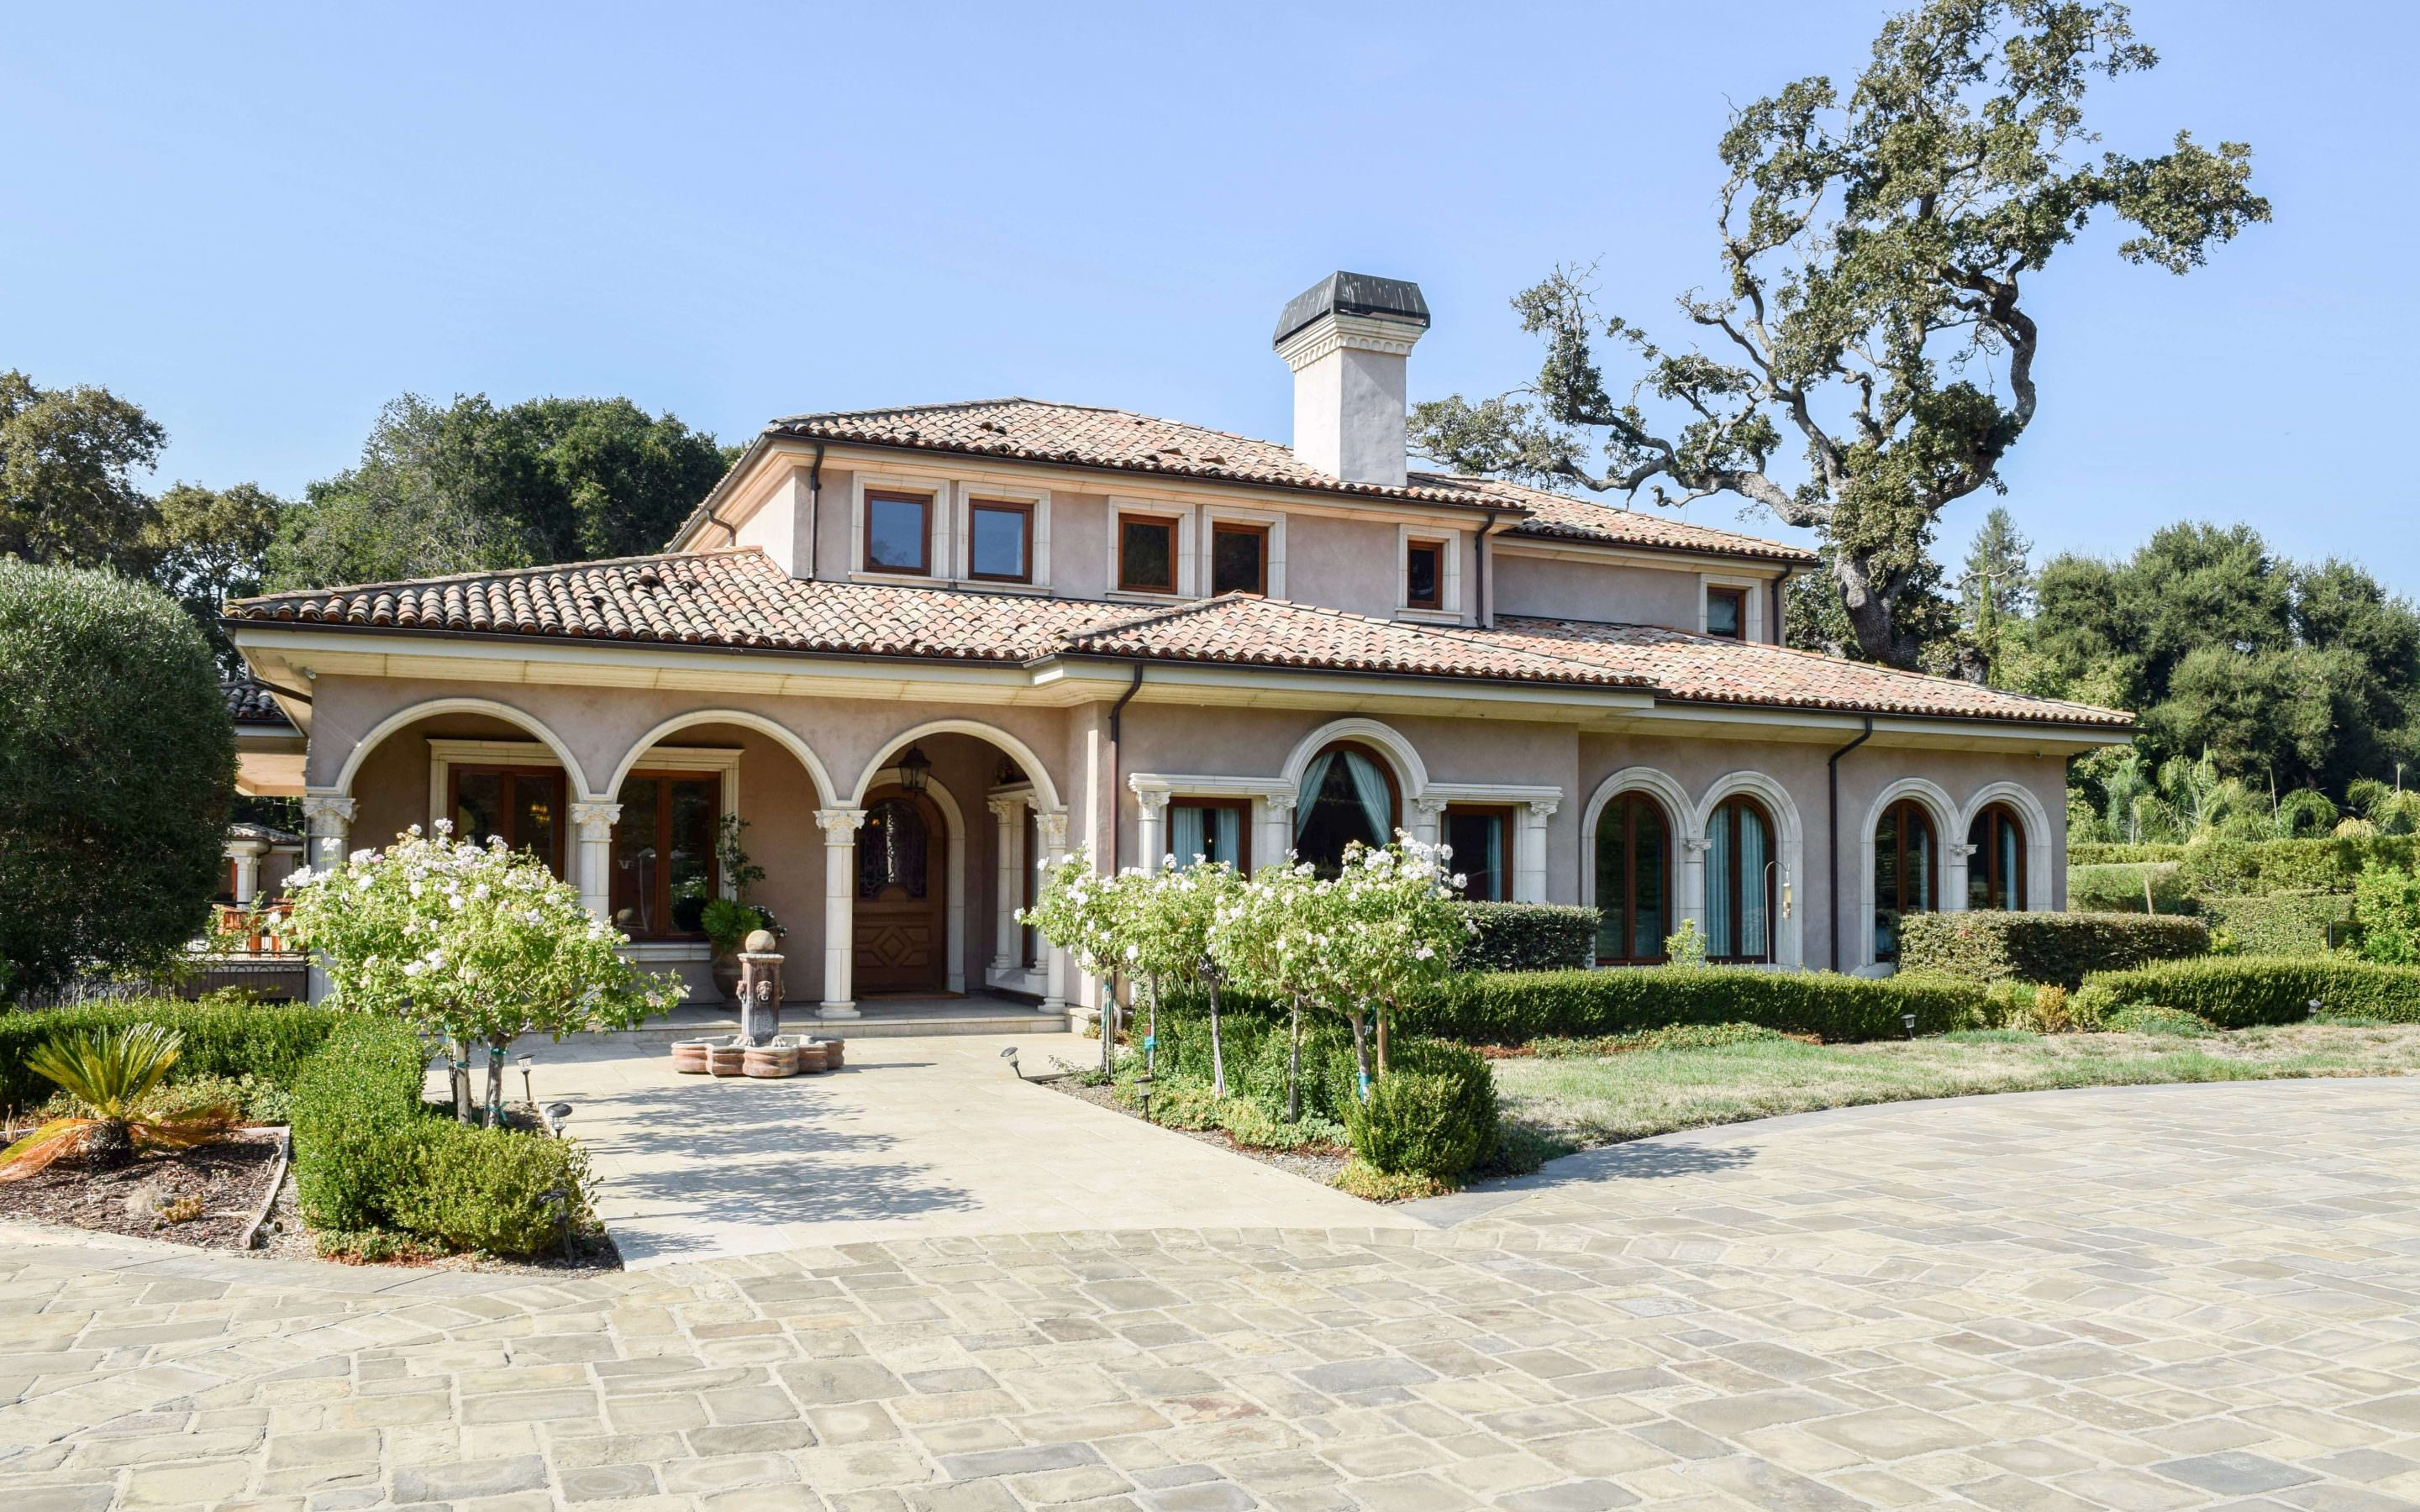 5 James Ave. Multi-Million Dollar Luxury Estate For Rent in Atherton, CA (8 Bed, 7 Bath)